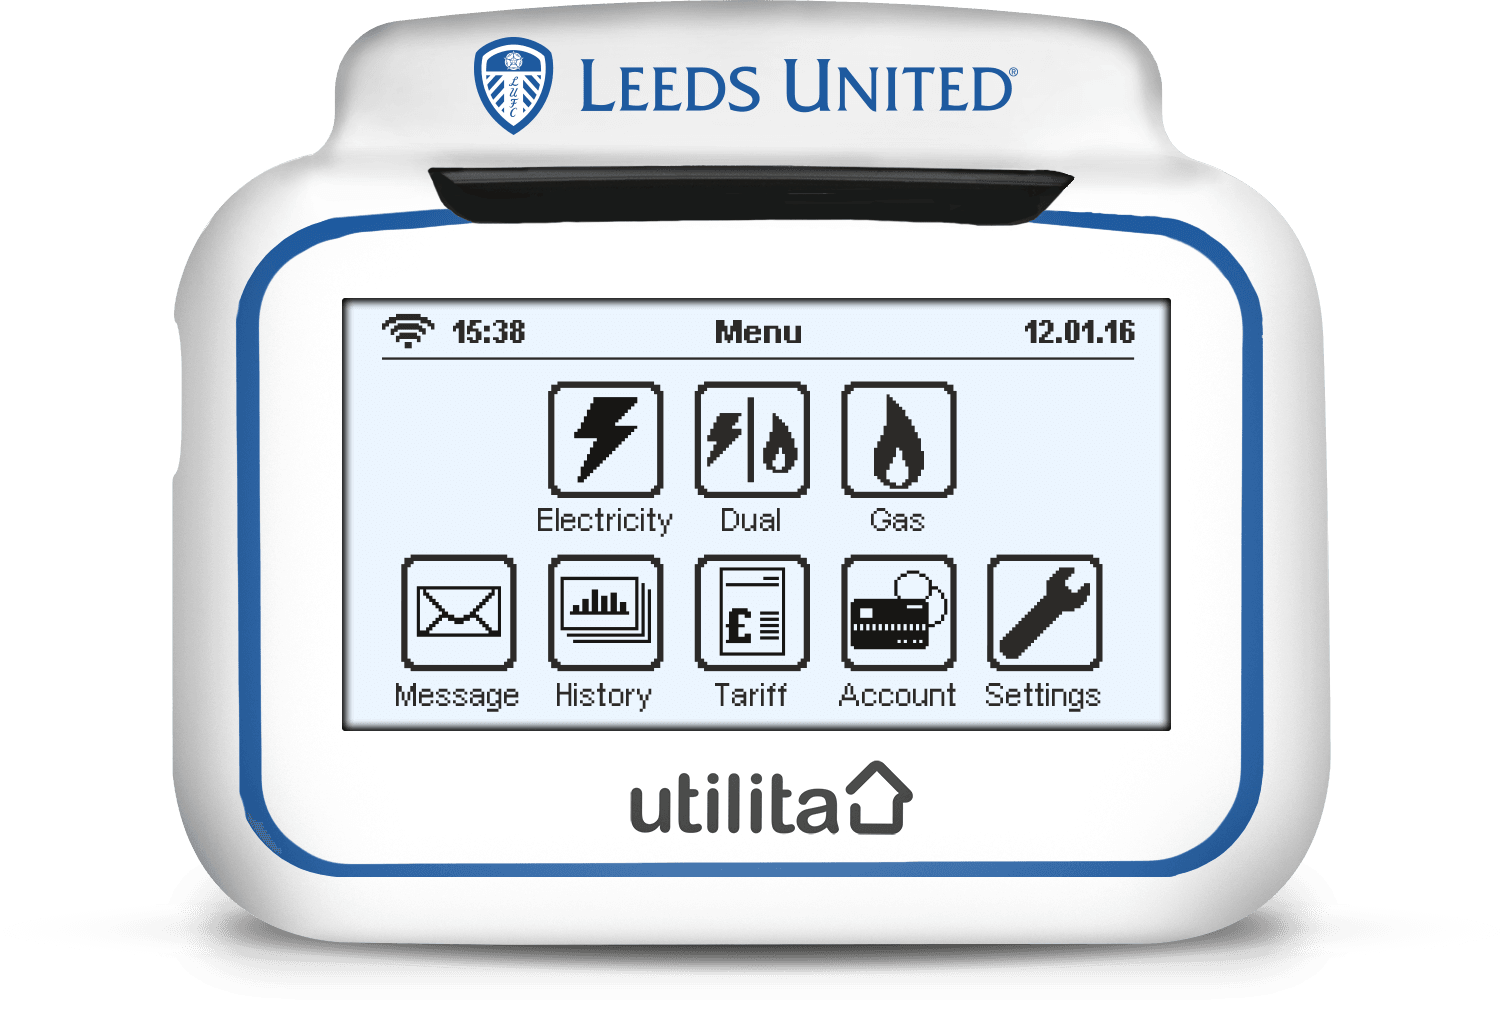 leeds In-Home Display Cover